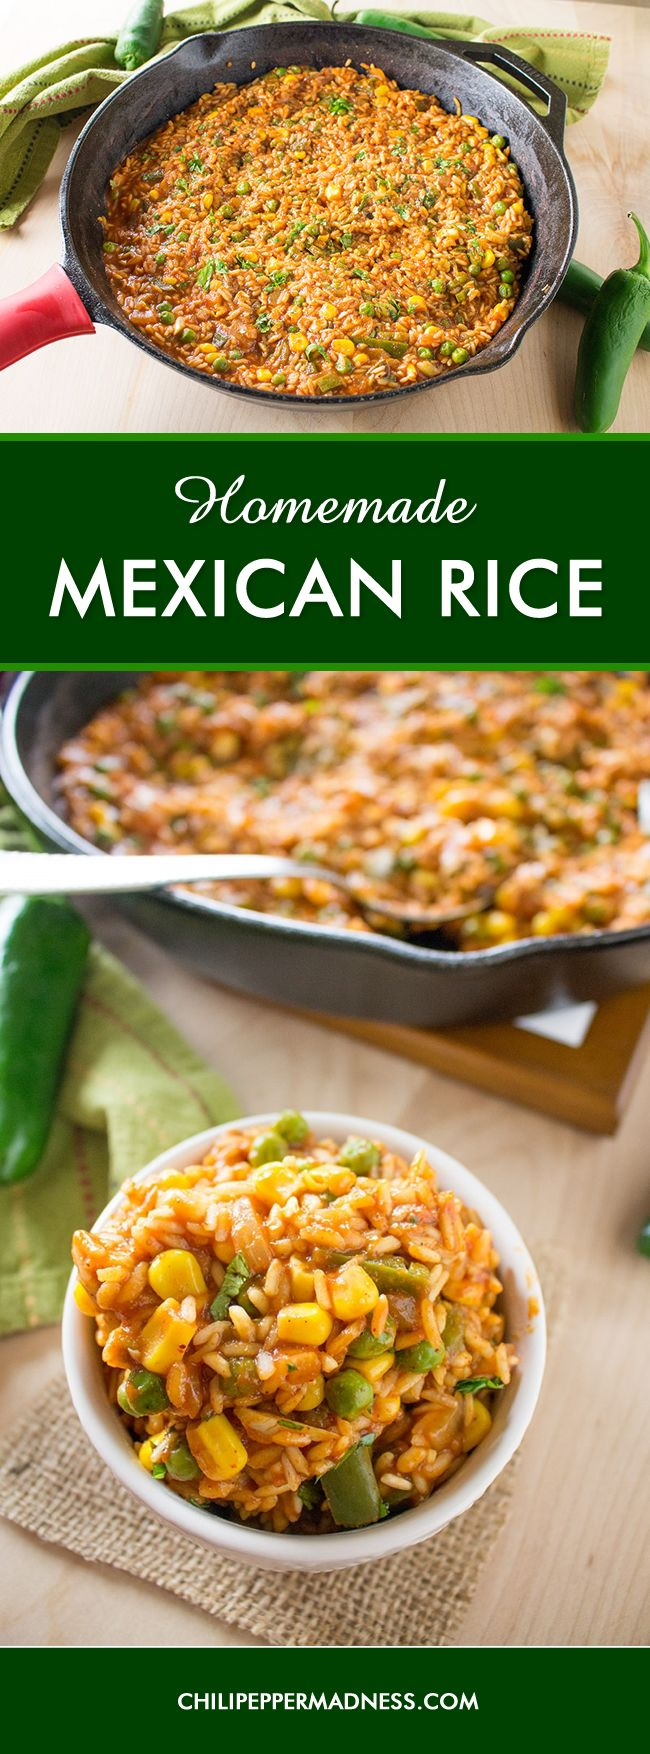 Homemade Mexican Rice Recipe -  Make this authentic, homemade Mexican rice for your next fiesta then step back as your guests go loco with flavor.